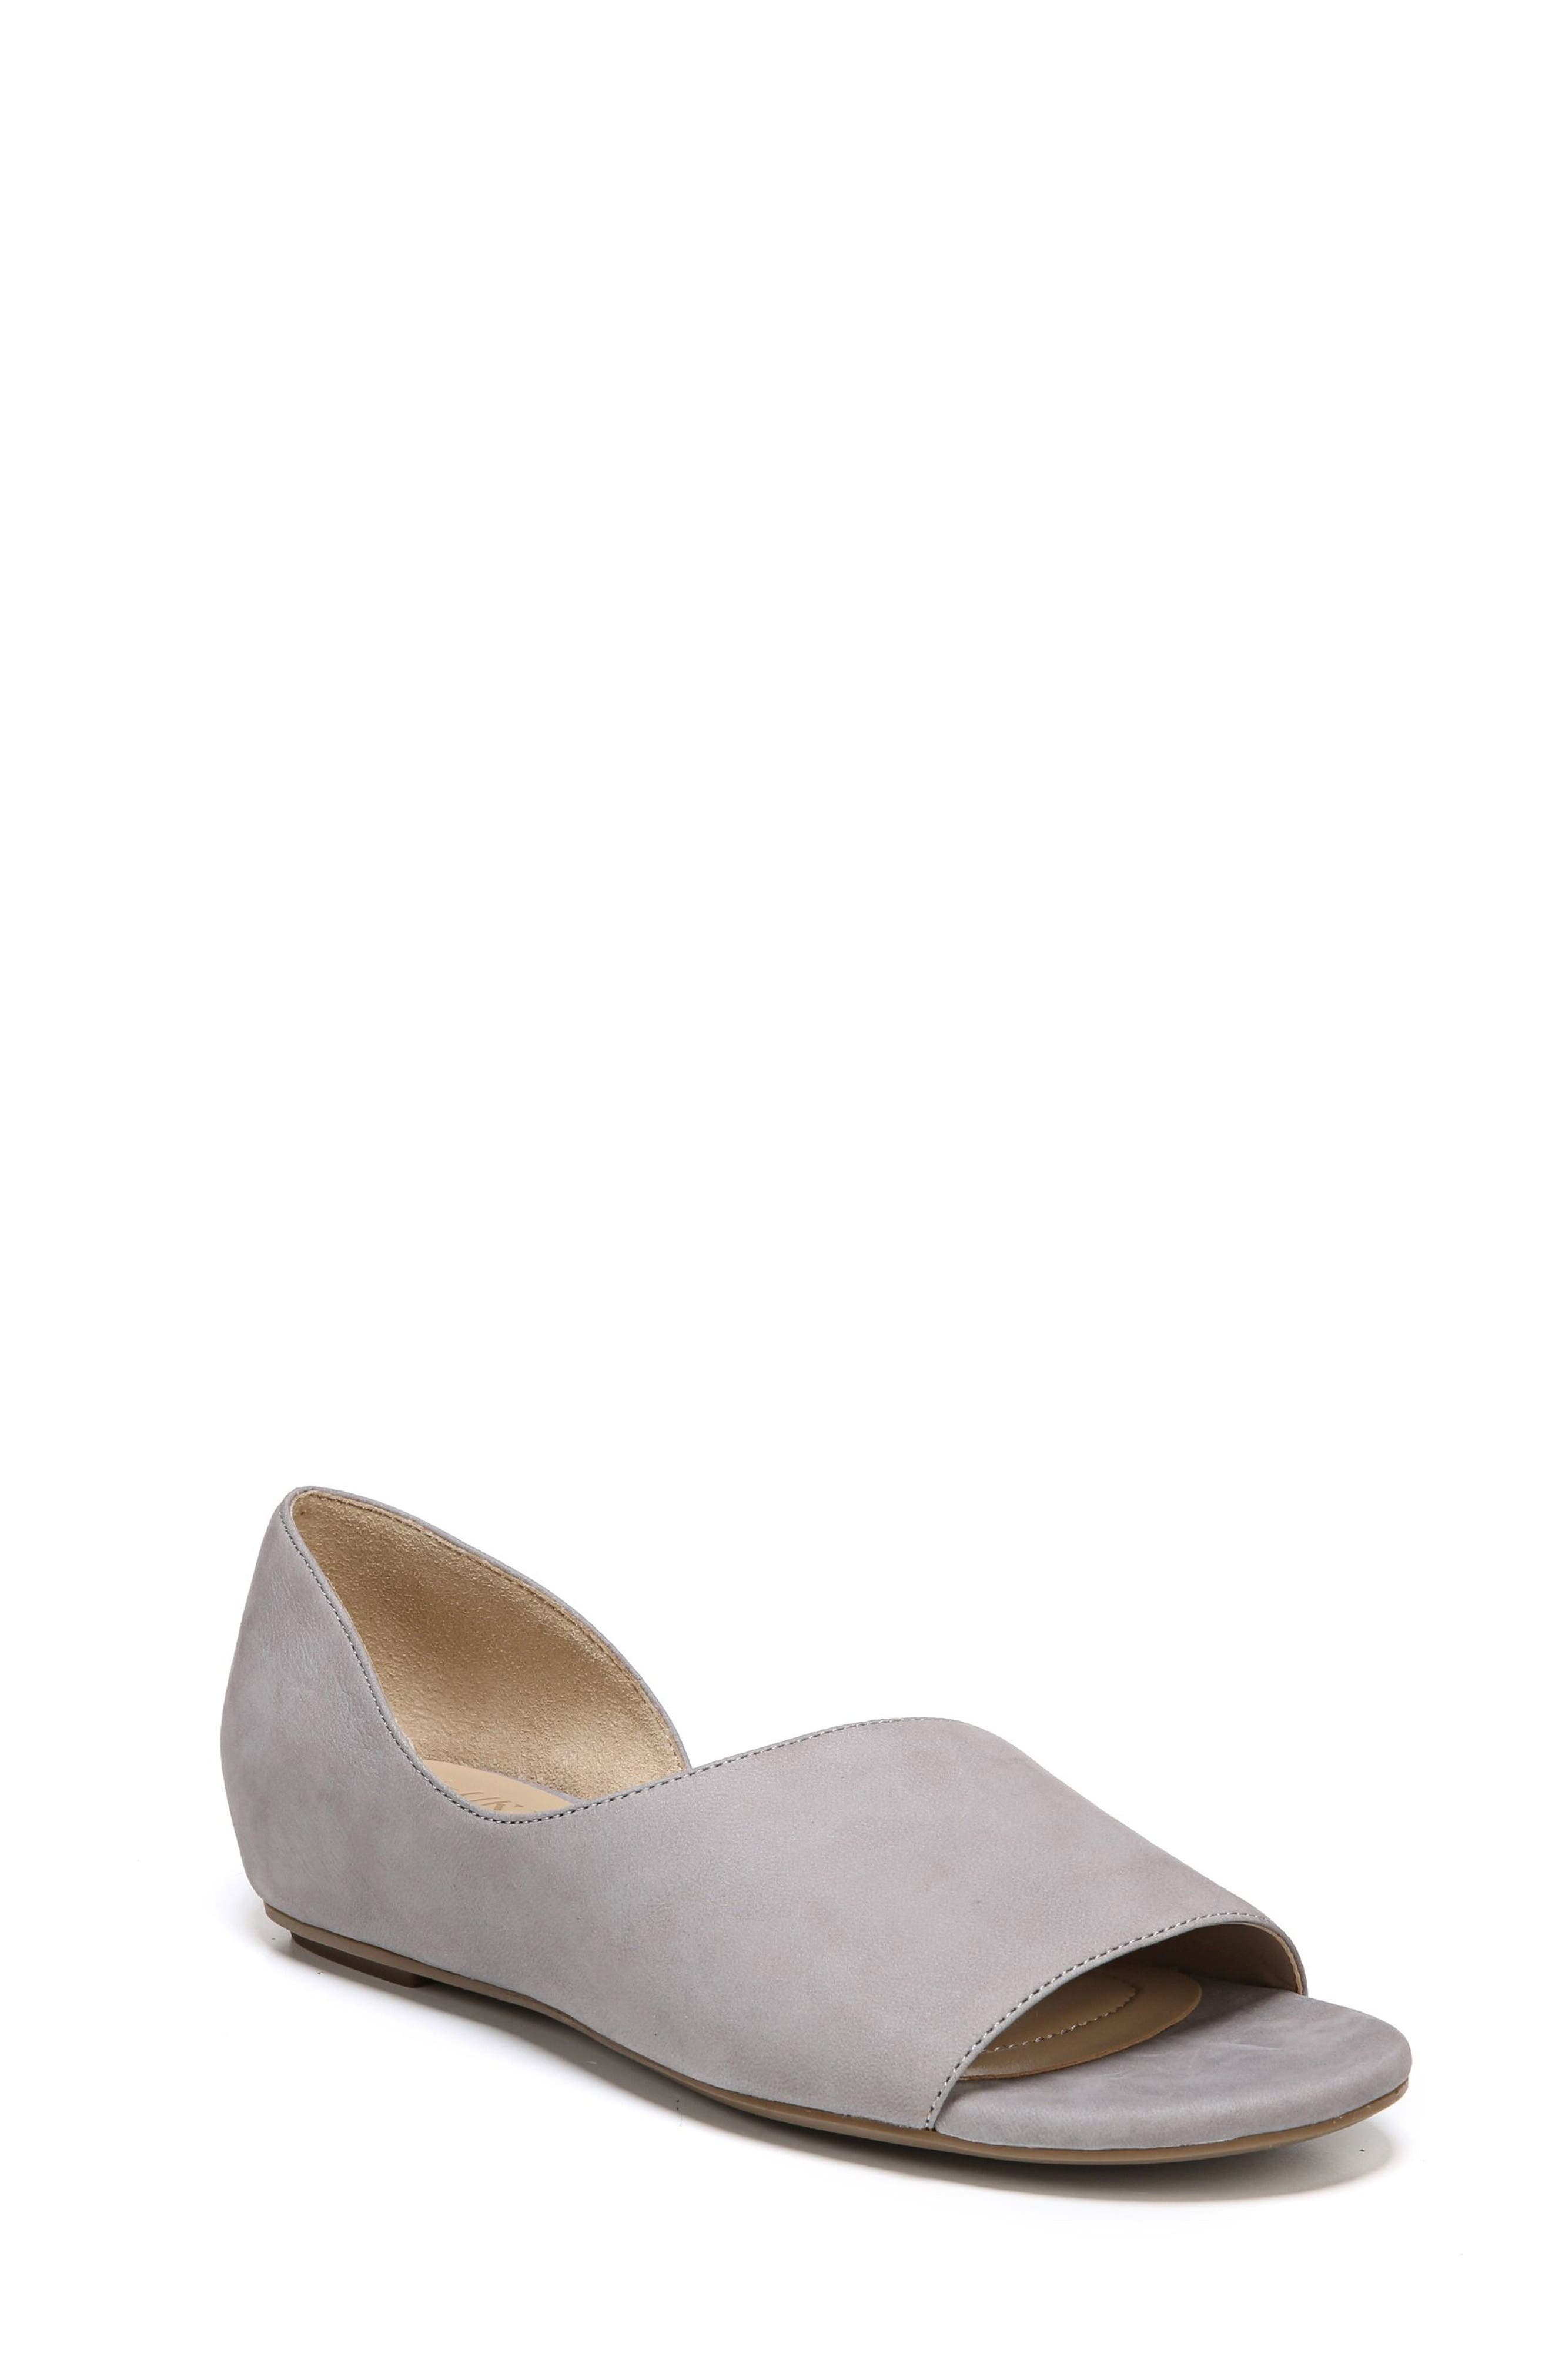 Lucie Half d'Orsay Flat,                         Main,                         color, 021